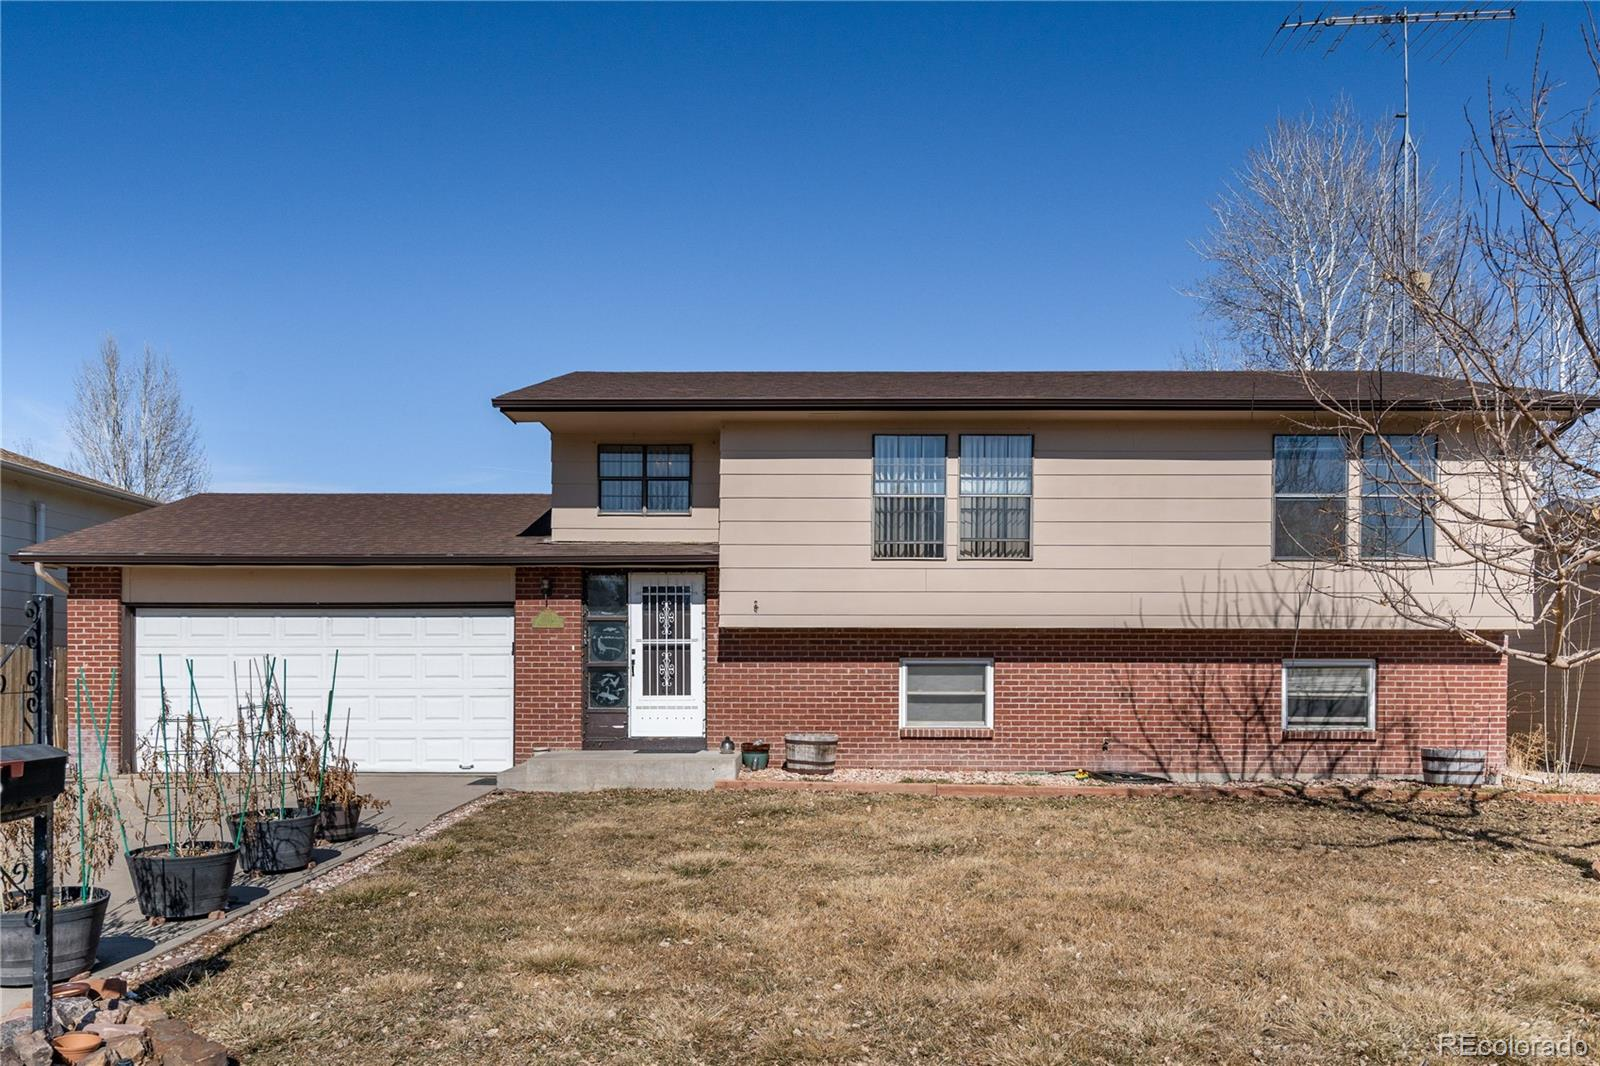 911 Pawnee Avenue, Fort Morgan, CO 80701 - Fort Morgan, CO real estate listing